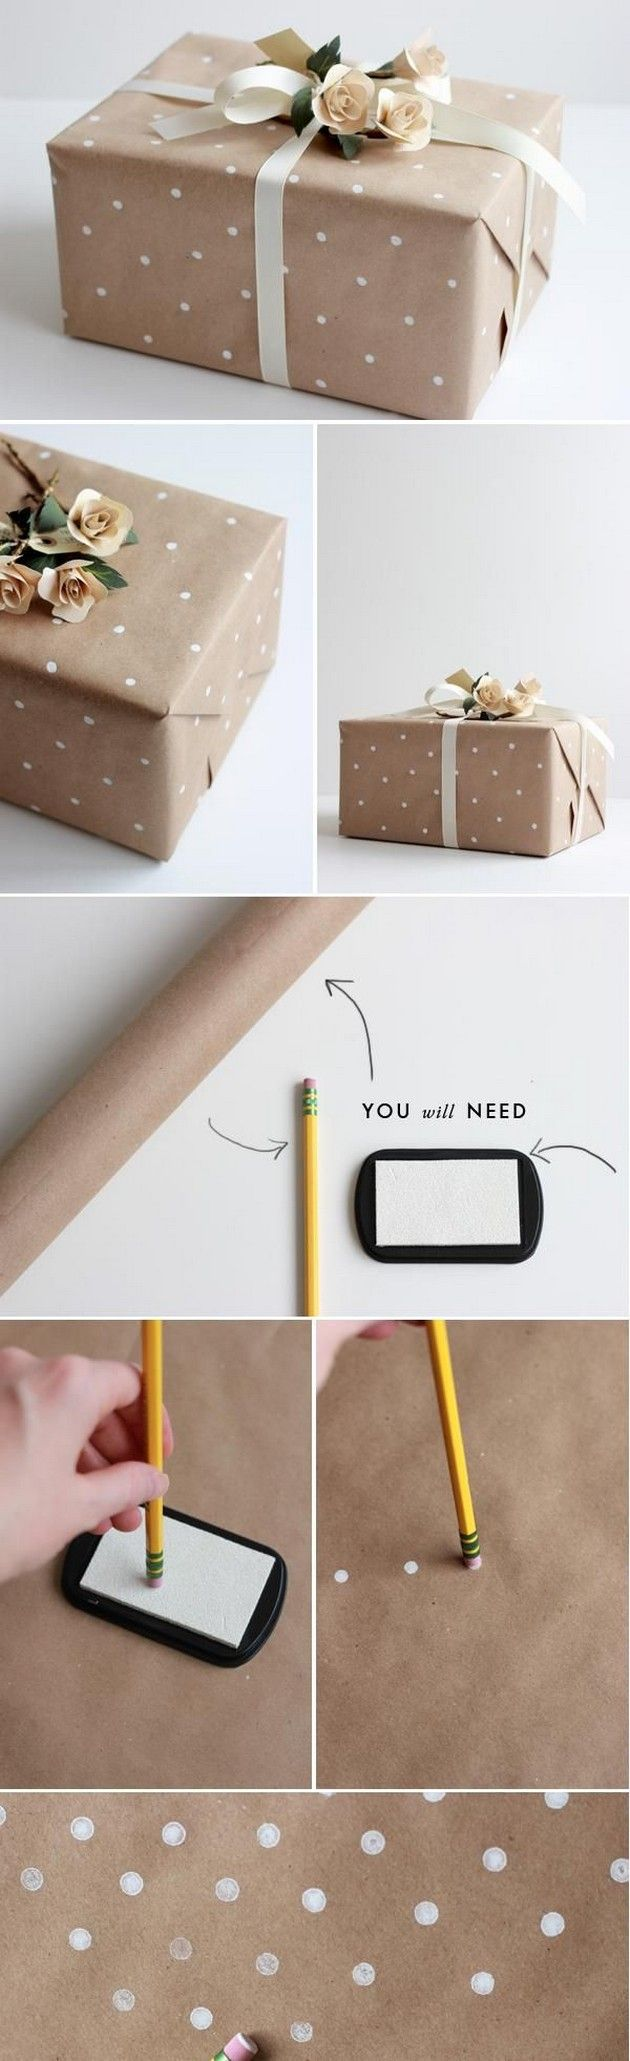 DIY Gift wrap ideas 141 best Wrap